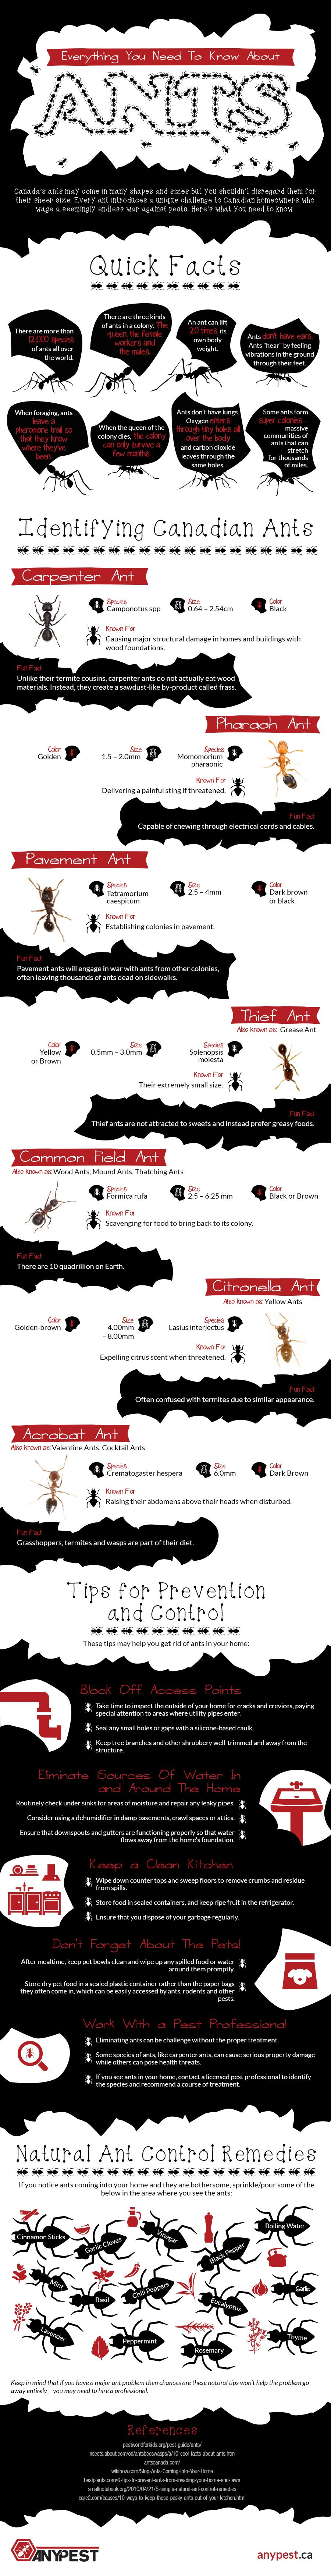 When it comes to pests, ants can be some of the most troublesome to remove from your home. In fact, a recent survey revealed that for homeowners, ants are the most irritating pests. Therefore it's important to know all the facts about ants. Check out this cool infographic